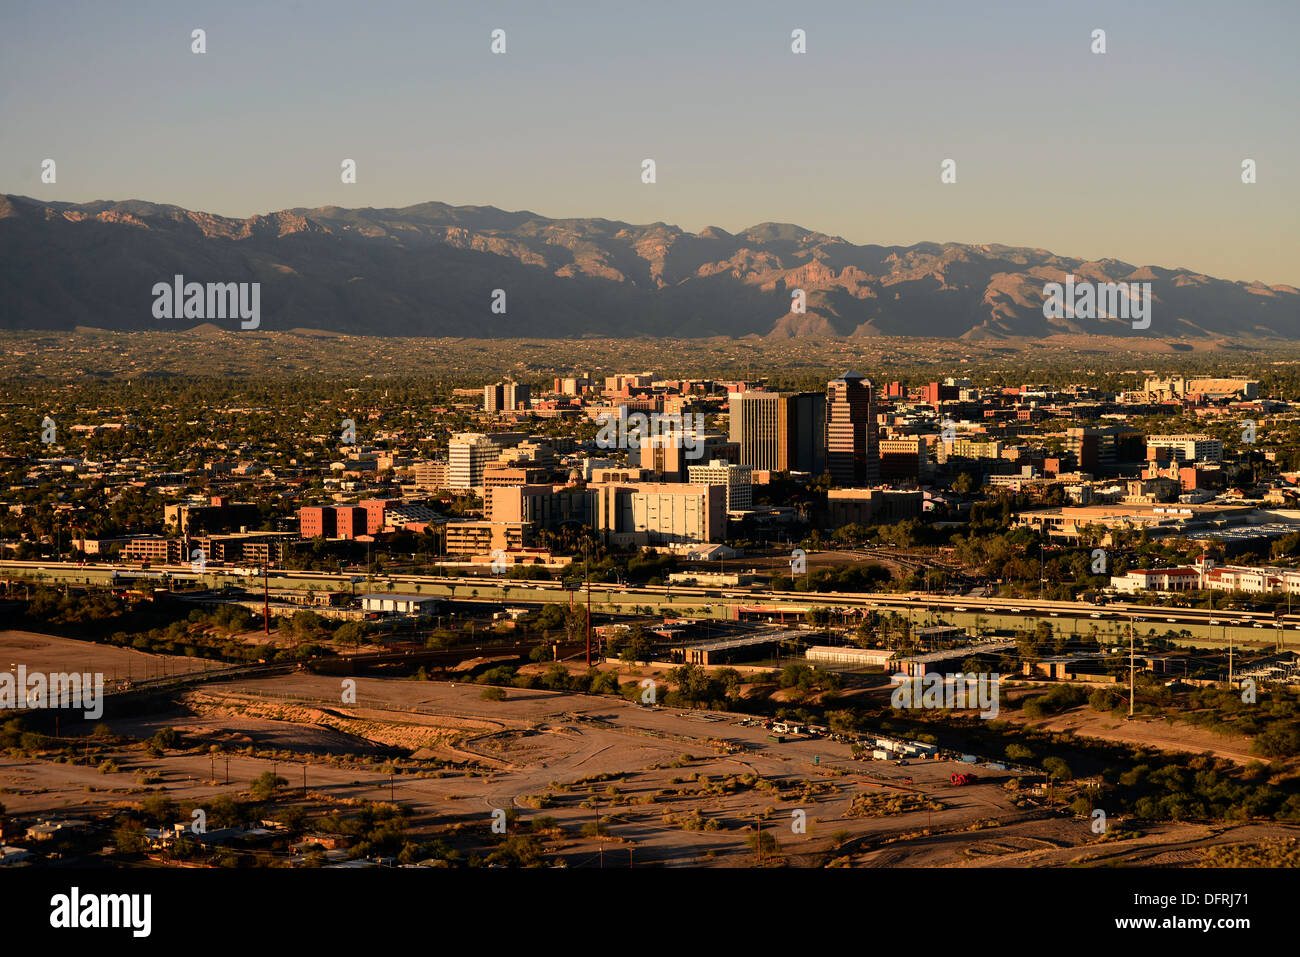 Tucson, Arizona, USA, with the Santa Catalina Mountains in the Coronado National Forest, Sonoran Desert. - Stock Image